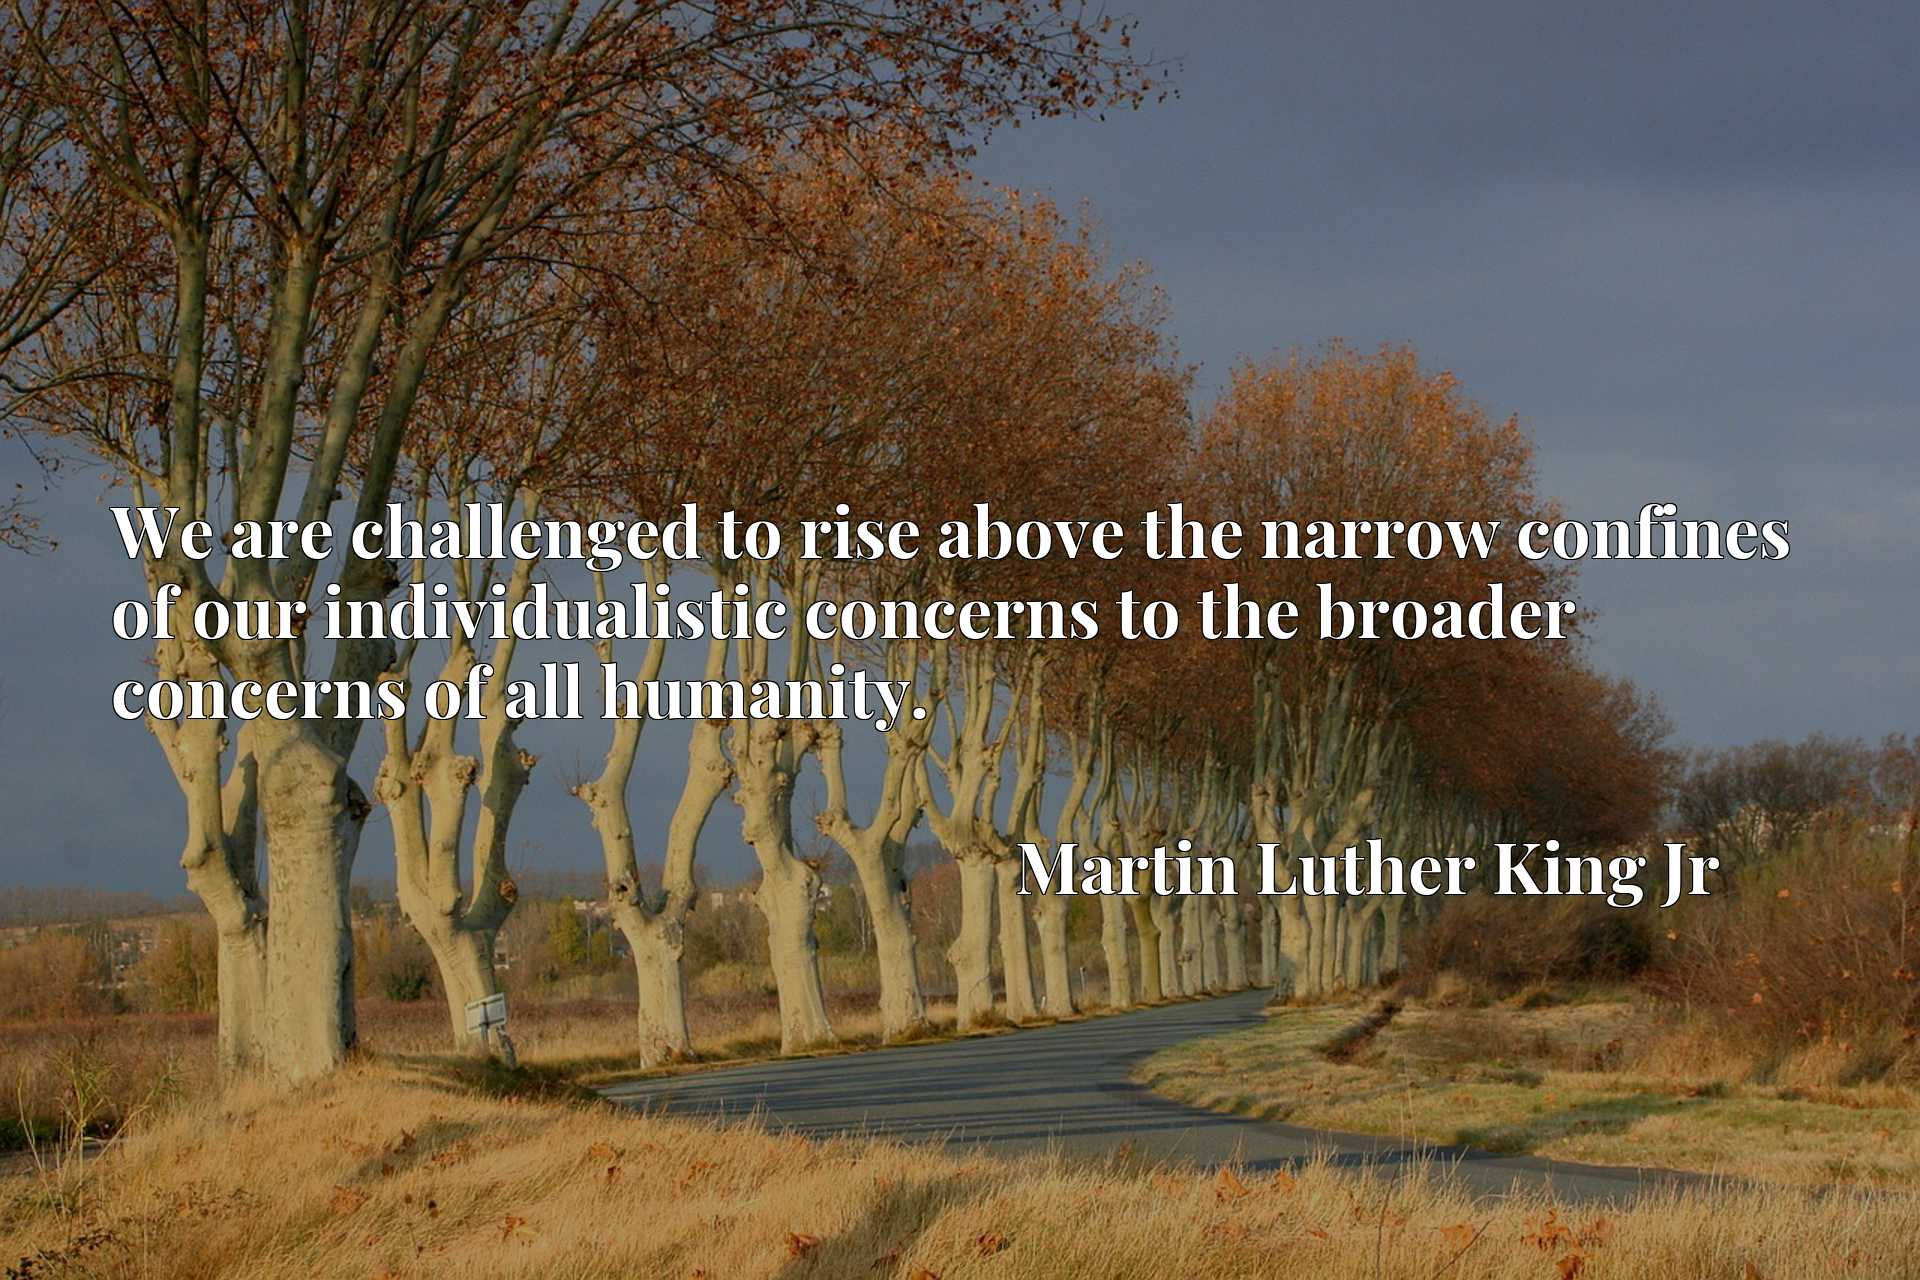 We are challenged to rise above the narrow confines of our individualistic concerns to the broader concerns of all humanity.